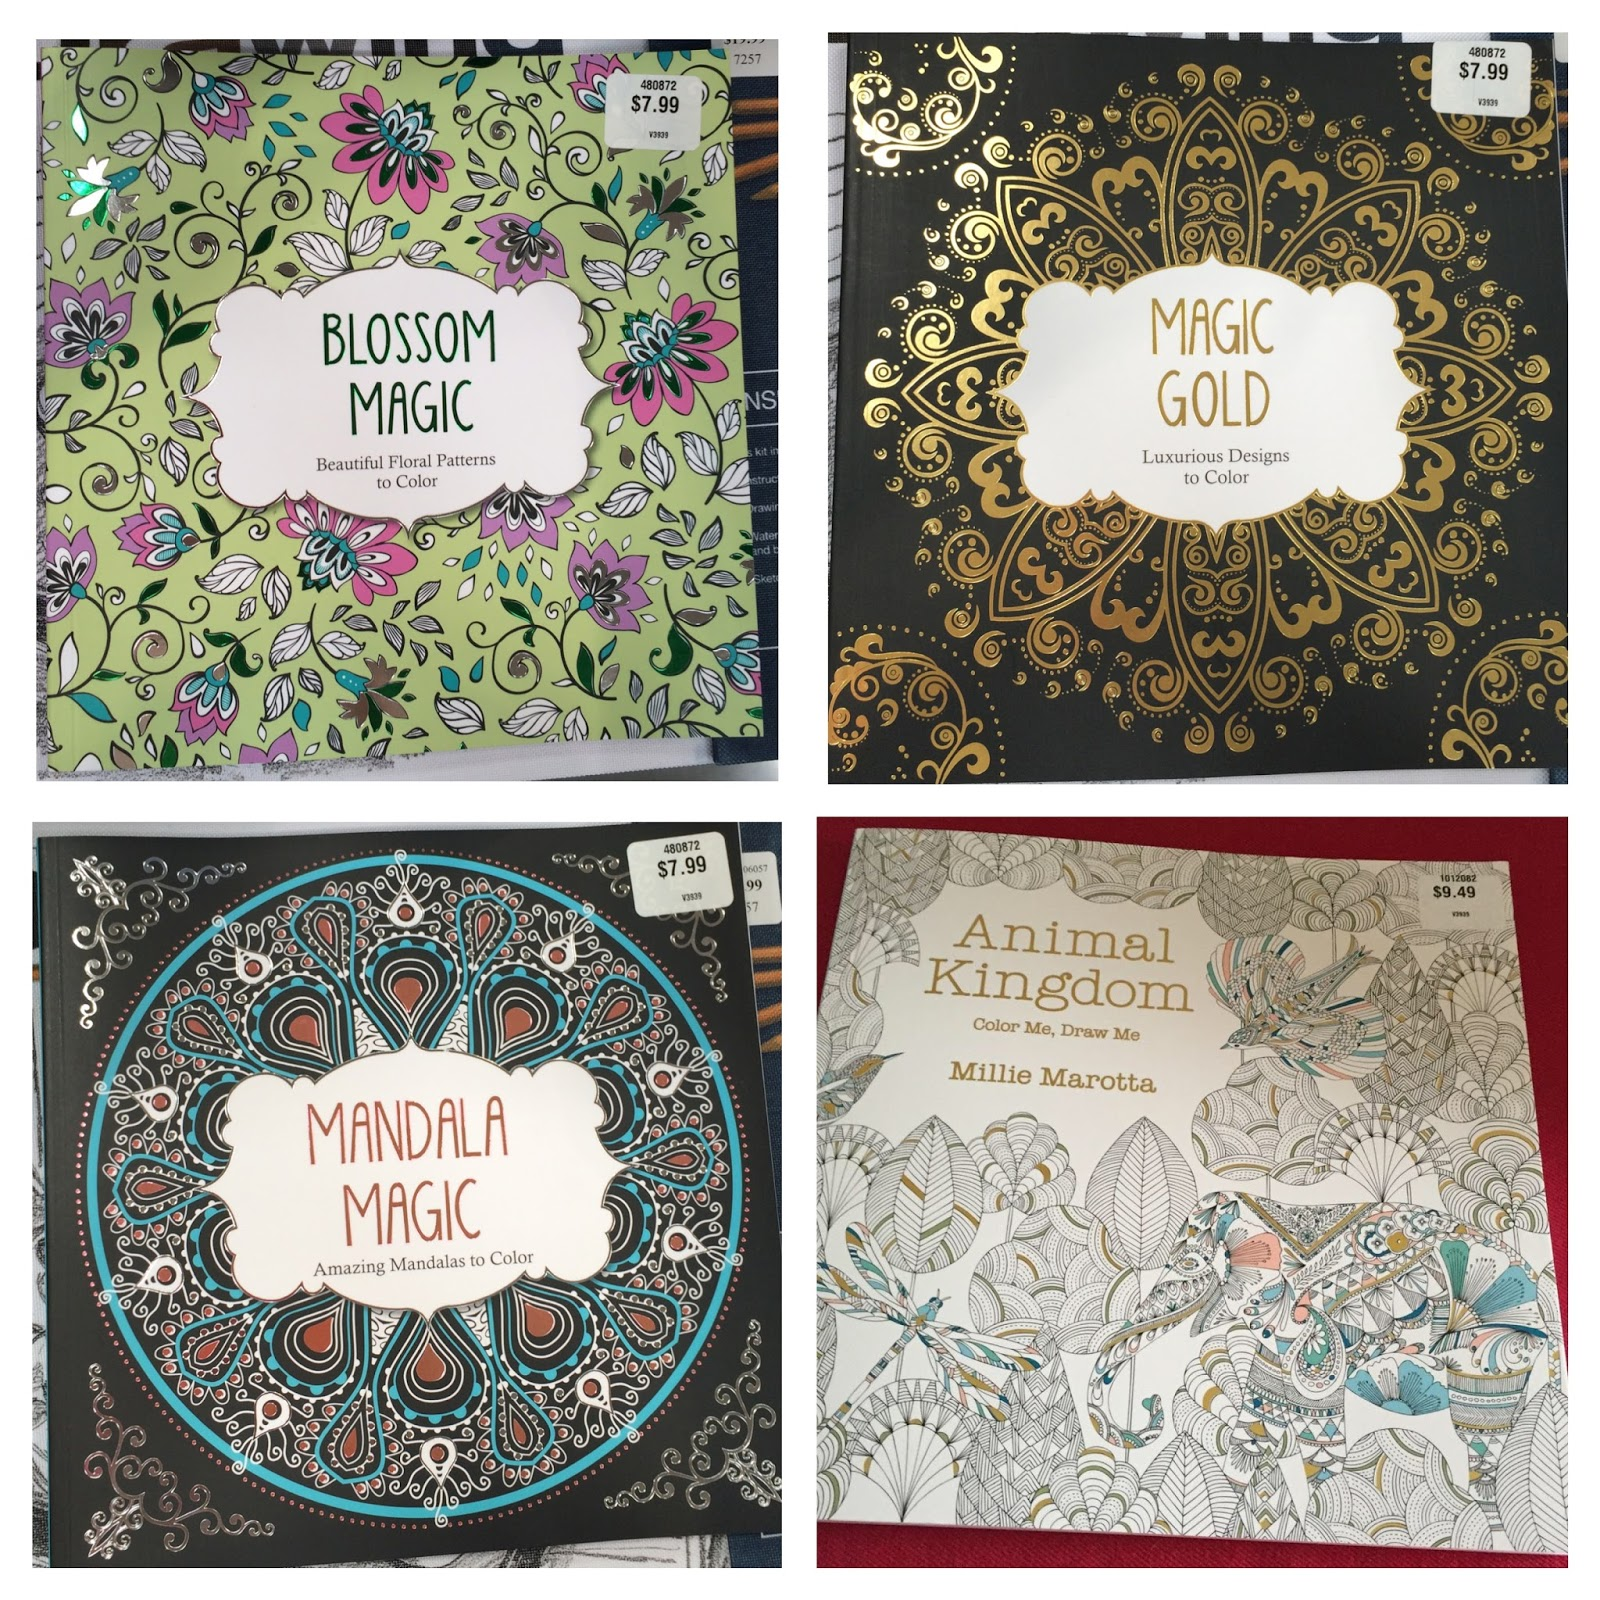 Costco Also Carries Deluxe Double Editions Of The Creative Haven Coloring Books Including Flower Art Paisley Patterns Geometric Designs And Mandalas